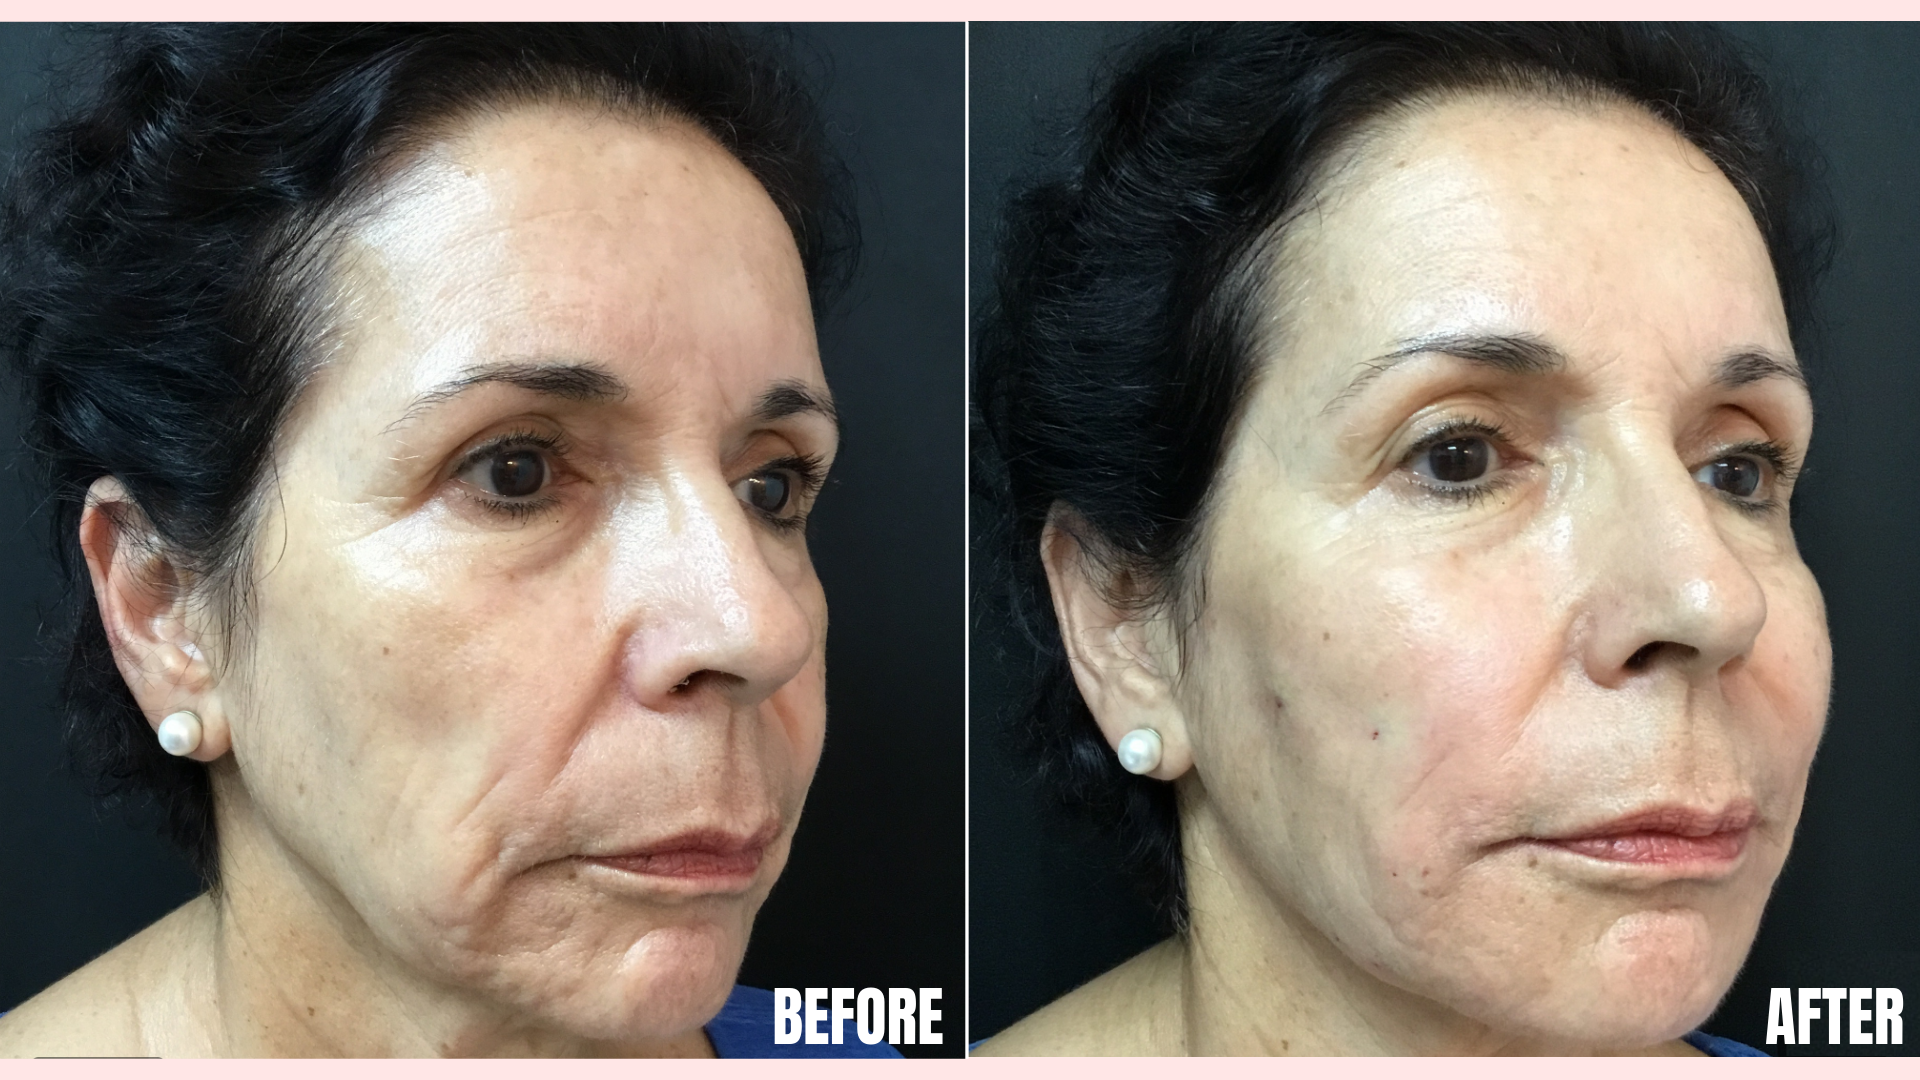 Bellafill in Tear Troughs, Nasolabial Folds, Cheekbones, Jawline, and Marionette Lines.